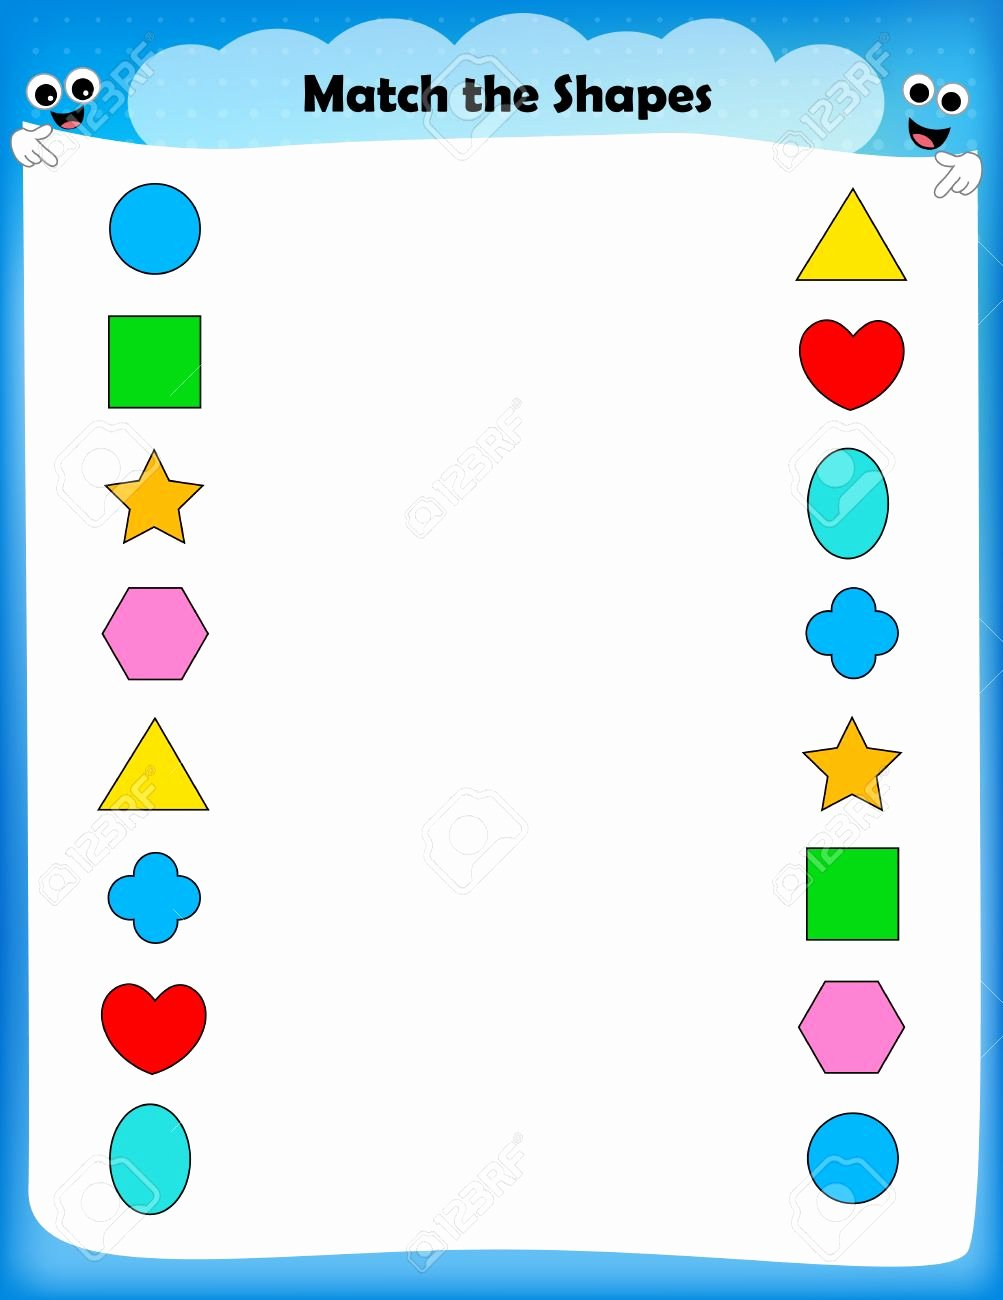 Shape Matching Worksheets for Preschoolers top Worksheet Match Similar Shapes Worksheet for Preschool Kids